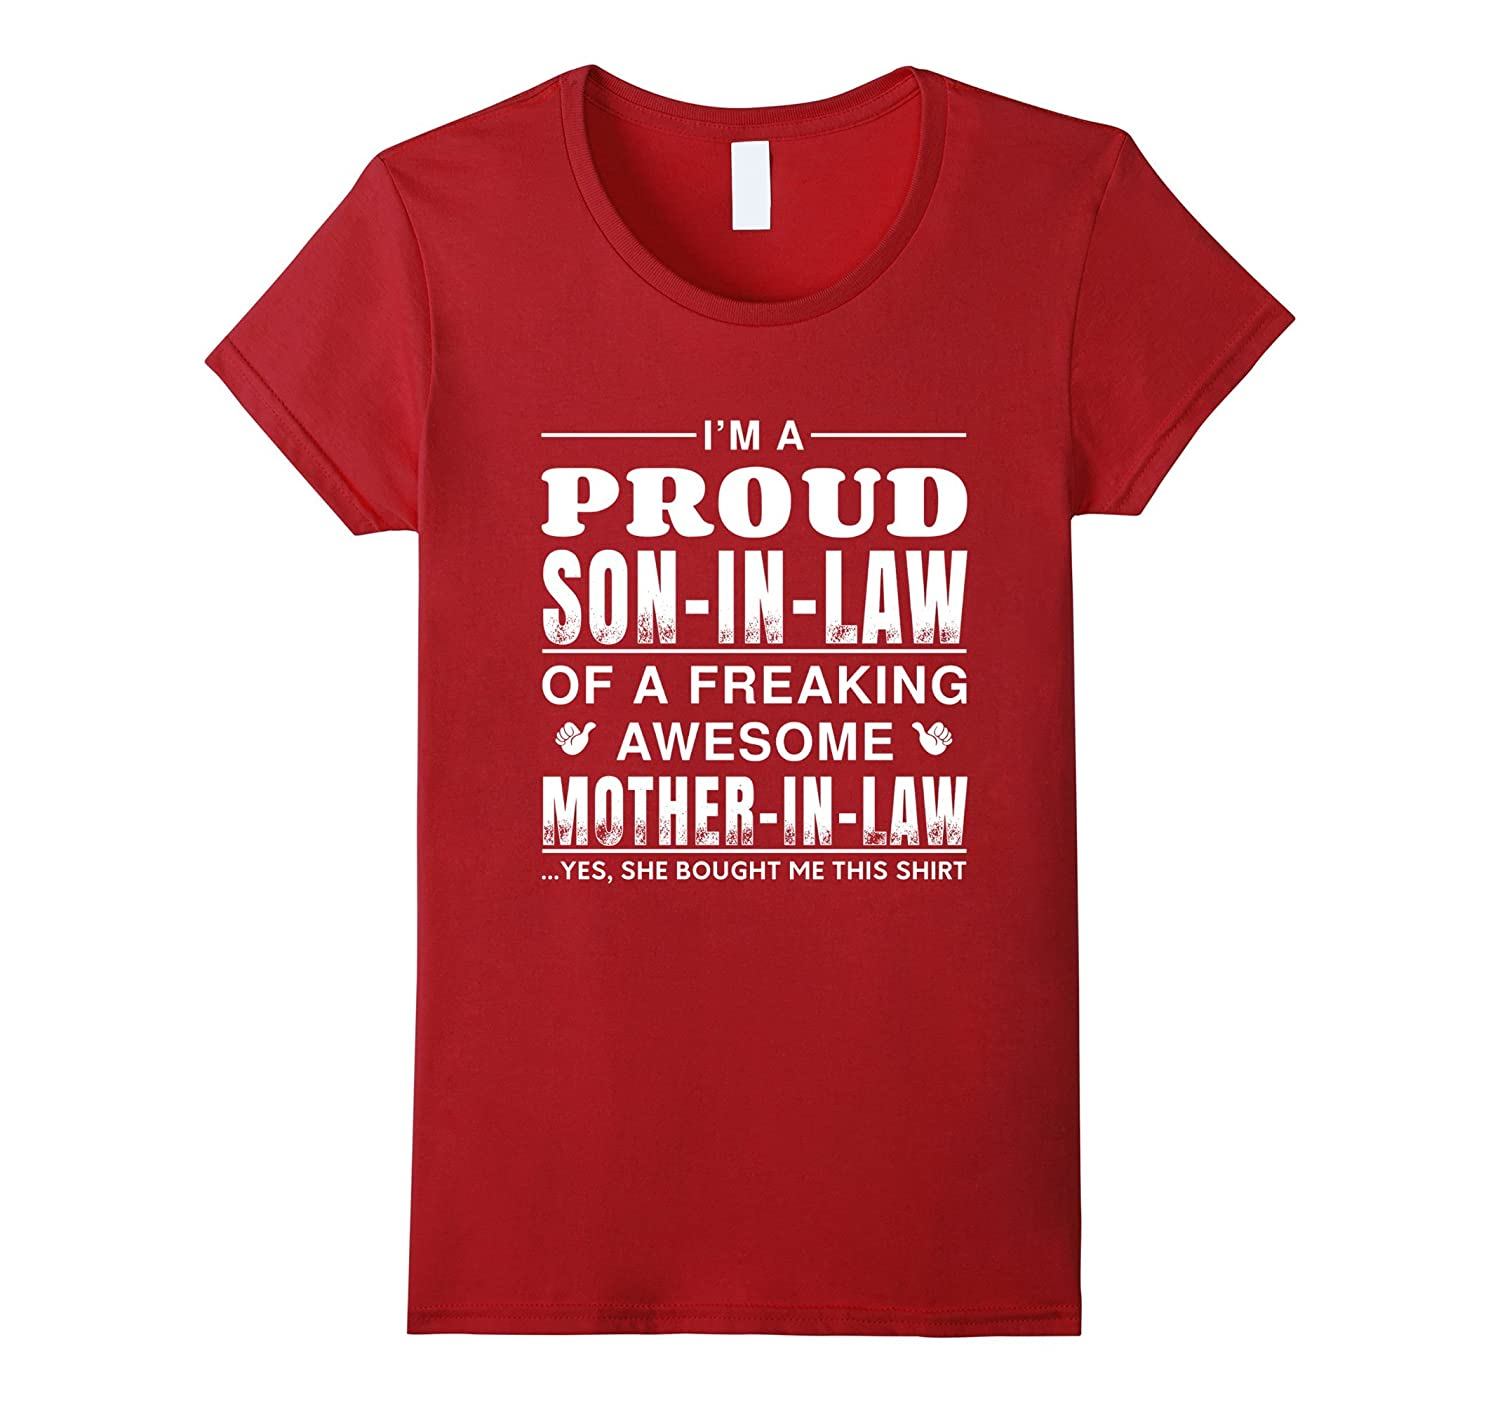 I'm Proud Son-In-Law Awesome Mother – In-Law T Shirt